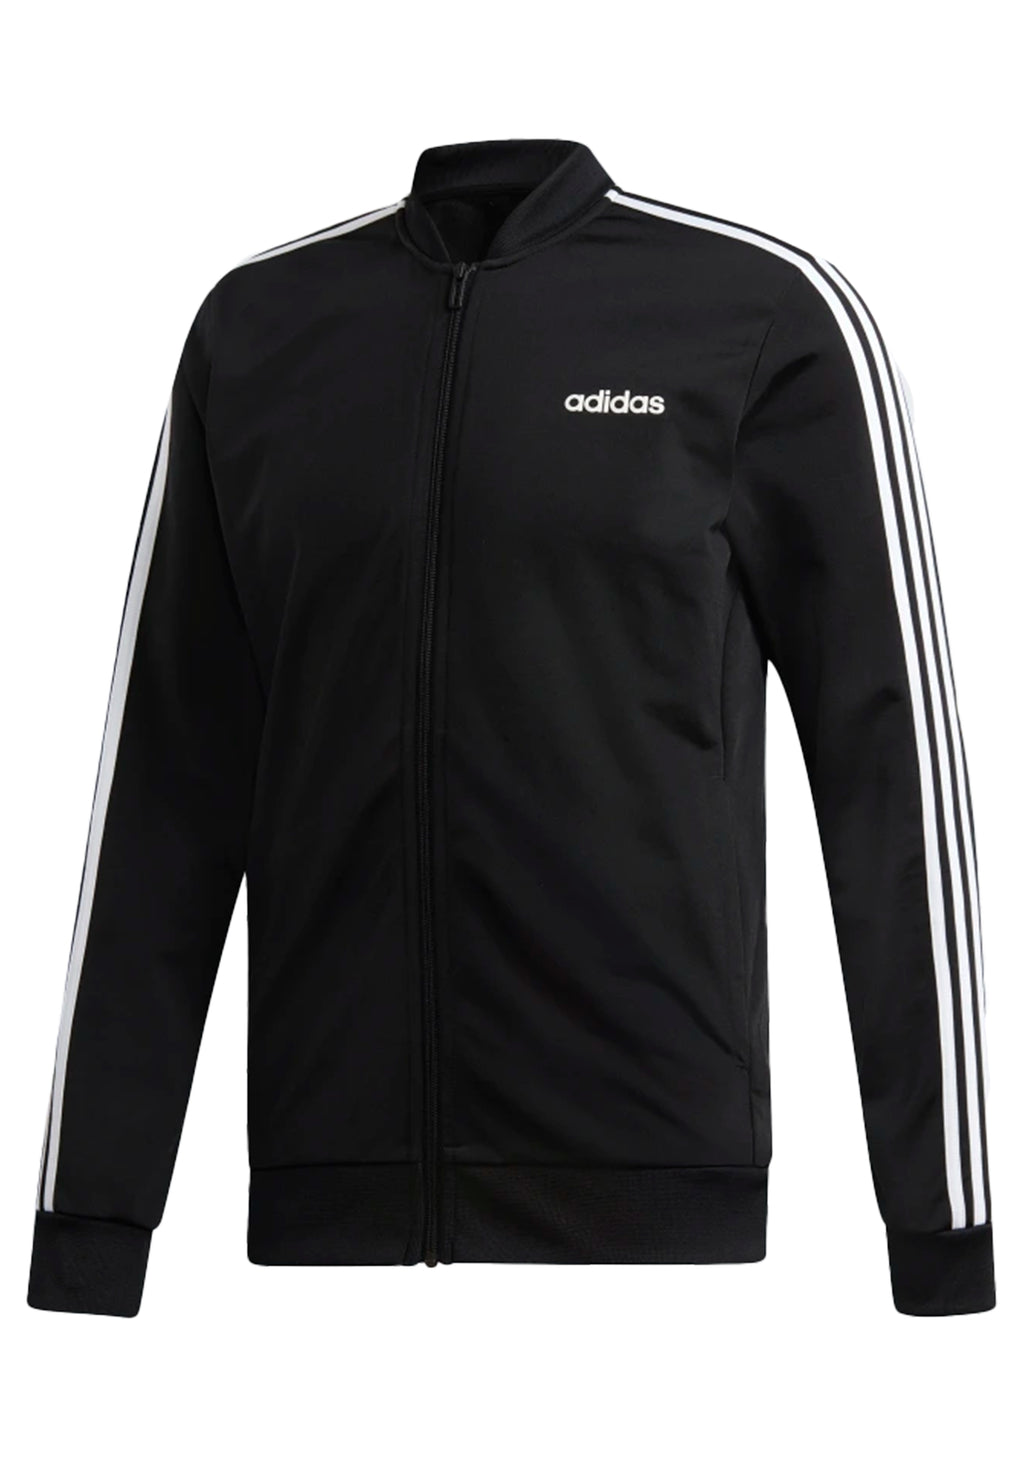 ADIDAS MENS 3 STRIPES TRACK SUIT TOP <BR> DV2448 TOP